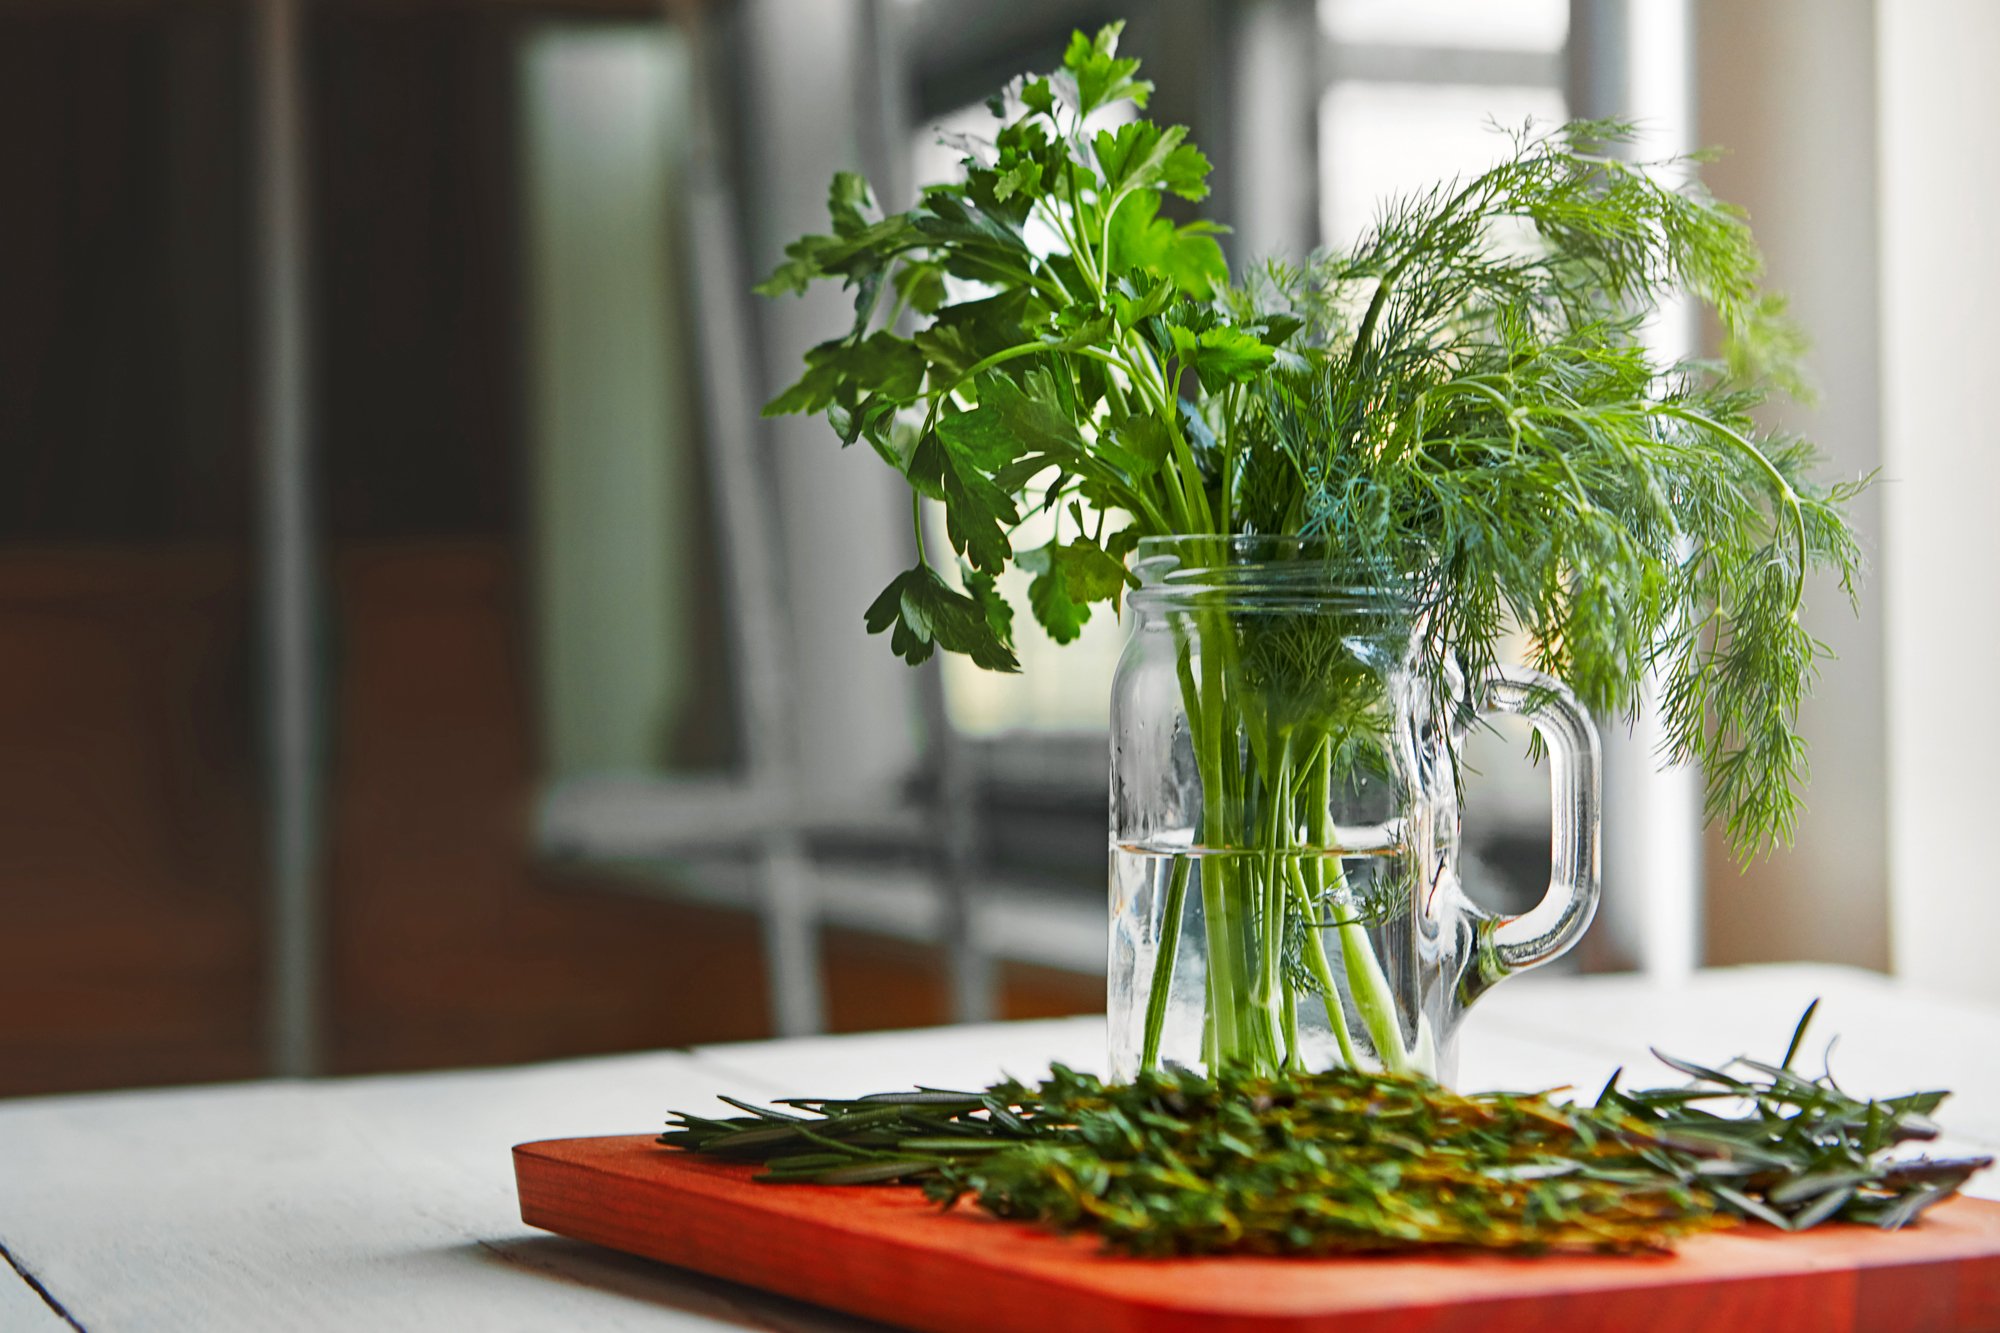 The Best Way To Store Herbs To Make Them Last